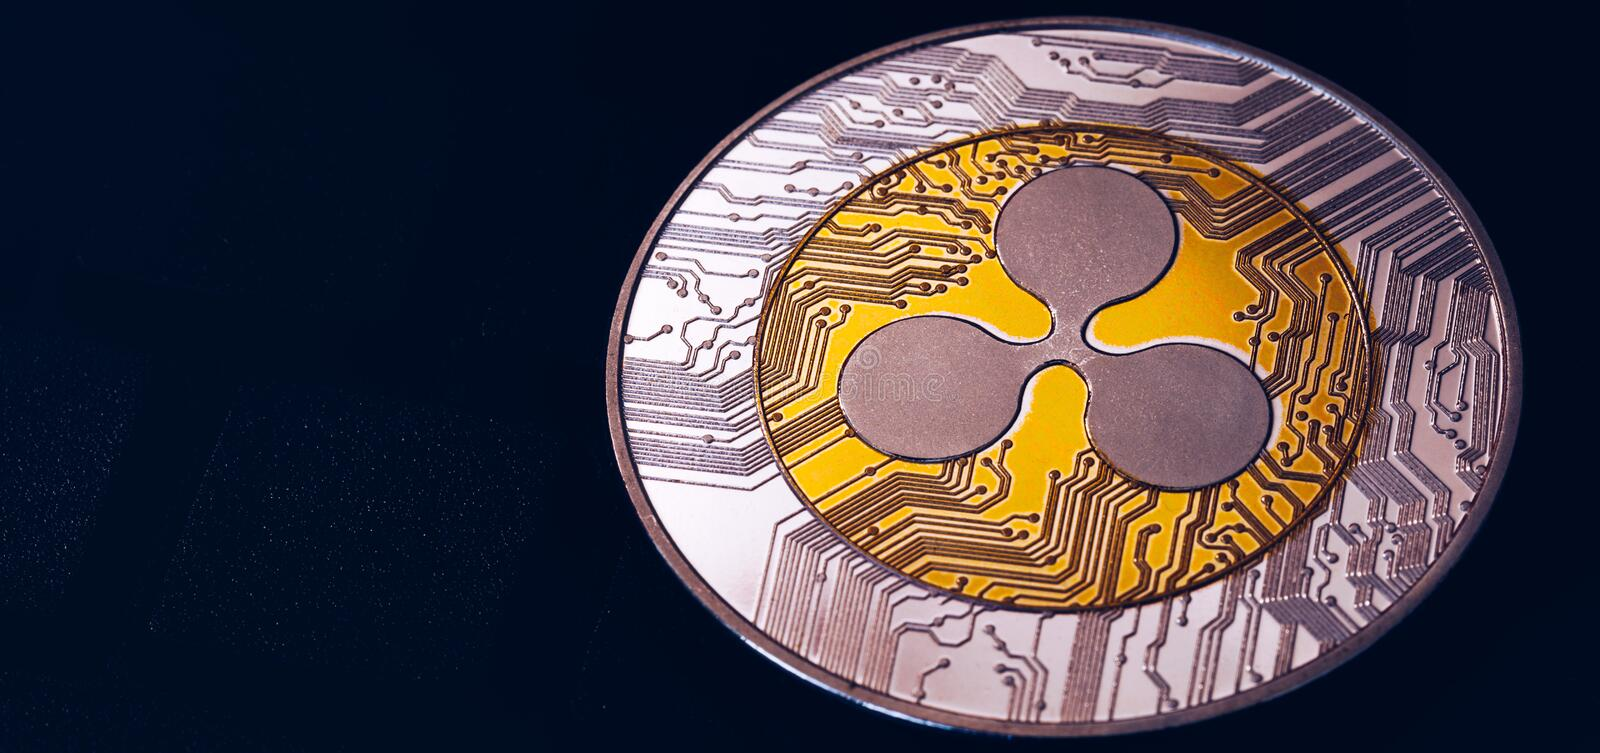 Ripple cryptocurrency crypto currency. Silver Ripple coin with gold Ripple symbol. Ripple XRP cryptocurrency.  stock image